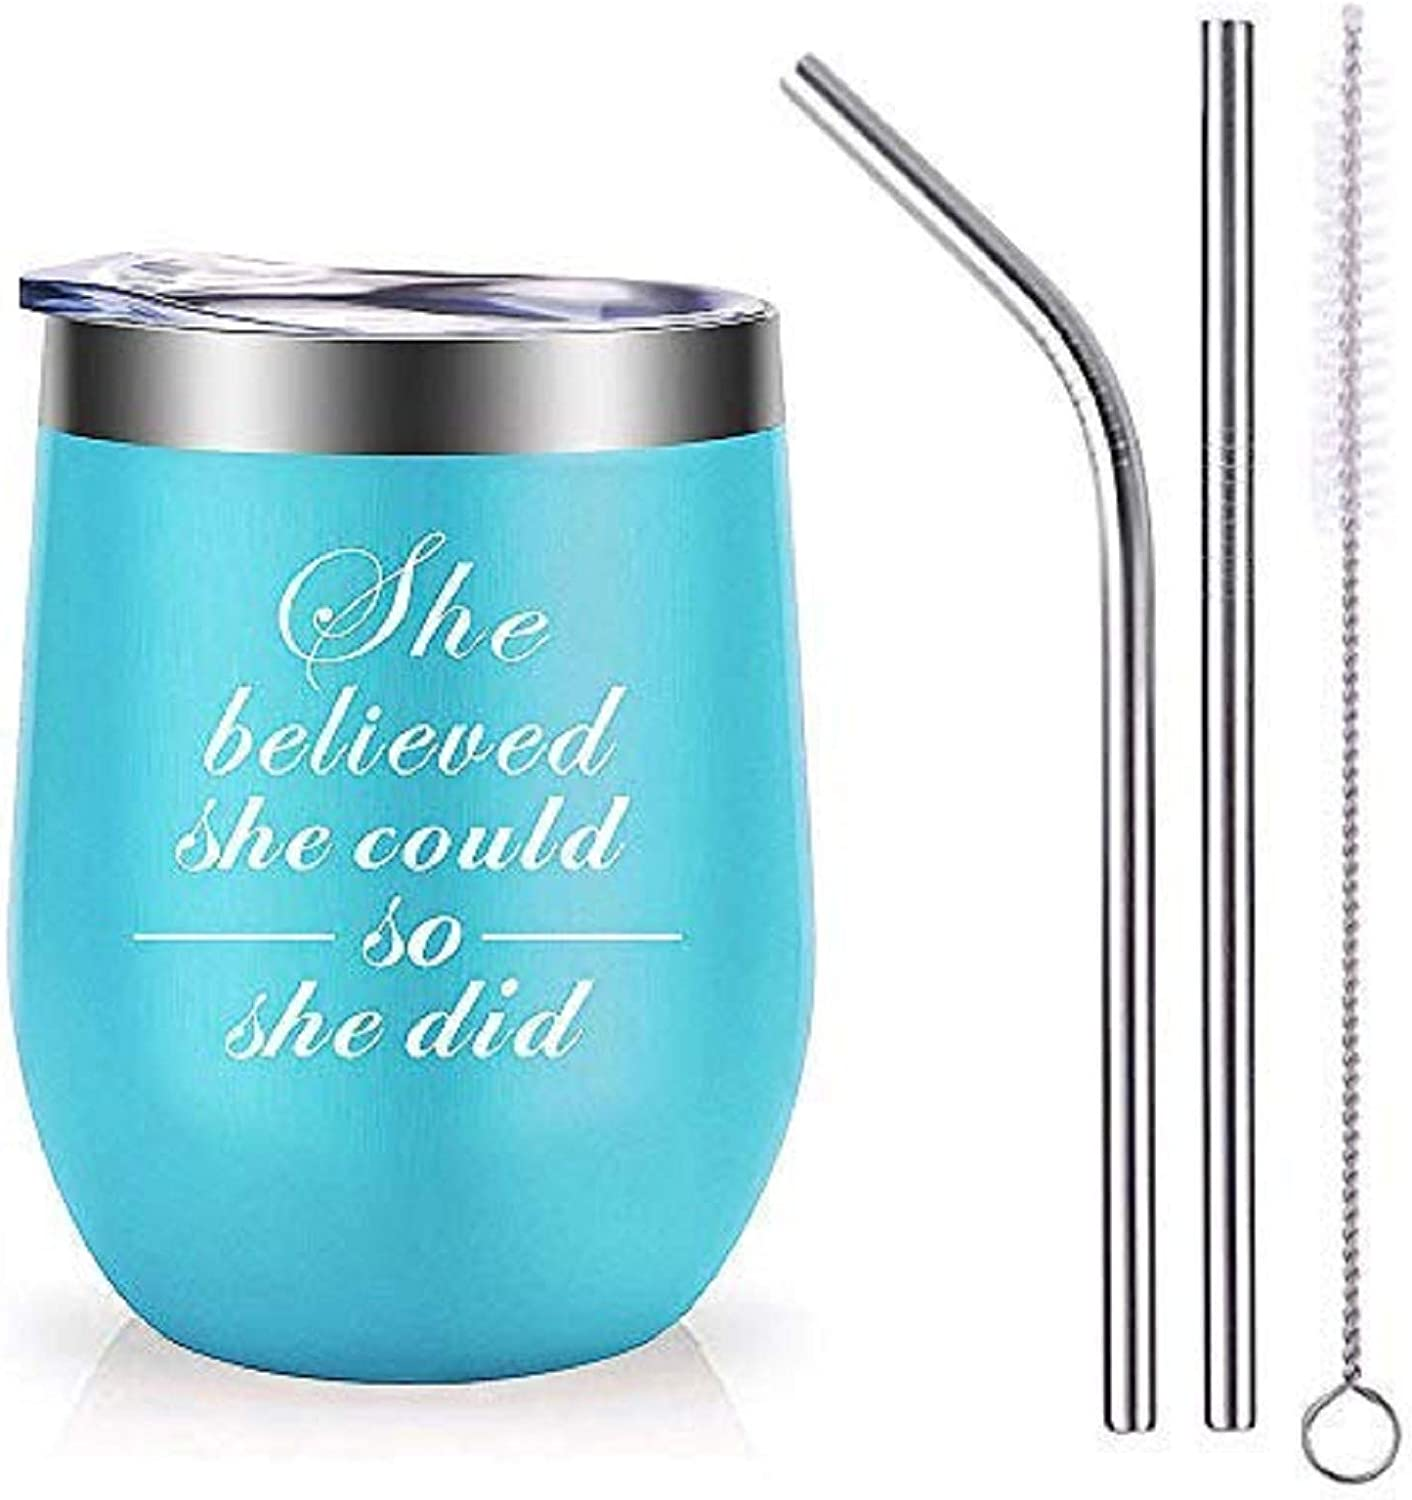 MJartoria Gifts for Women-12 OZ She Believed She Could So She Did Wine Glass Mug Tumbler with Lid Stainless Steel Straw Brusher Funny Congratulations Birthday BFF Gifts for Friends